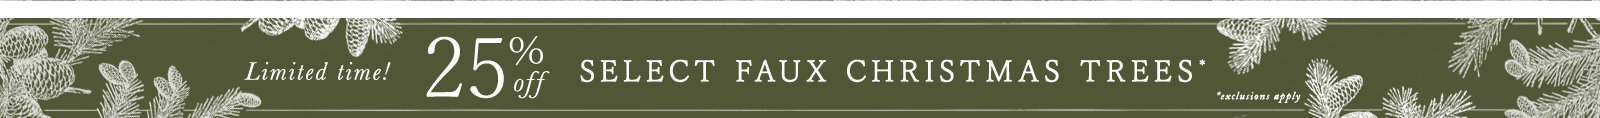 Limited Time! Enjoy 25% off select faux Christmas trees! Prices as marked